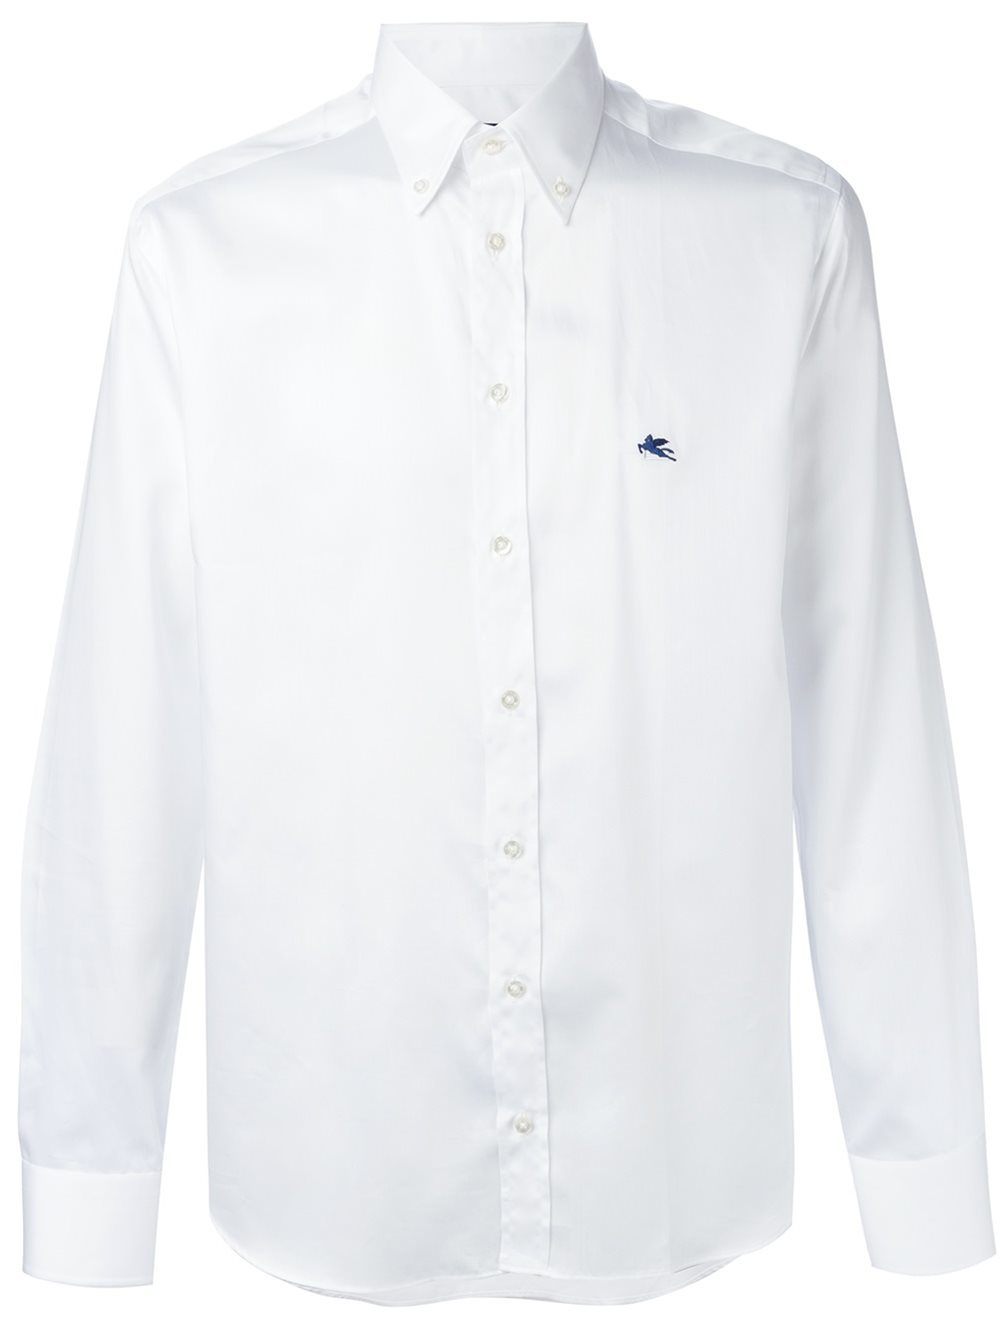 Lyst etro embroidered logo shirt men cotton 44 for Embroidered logos on shirts